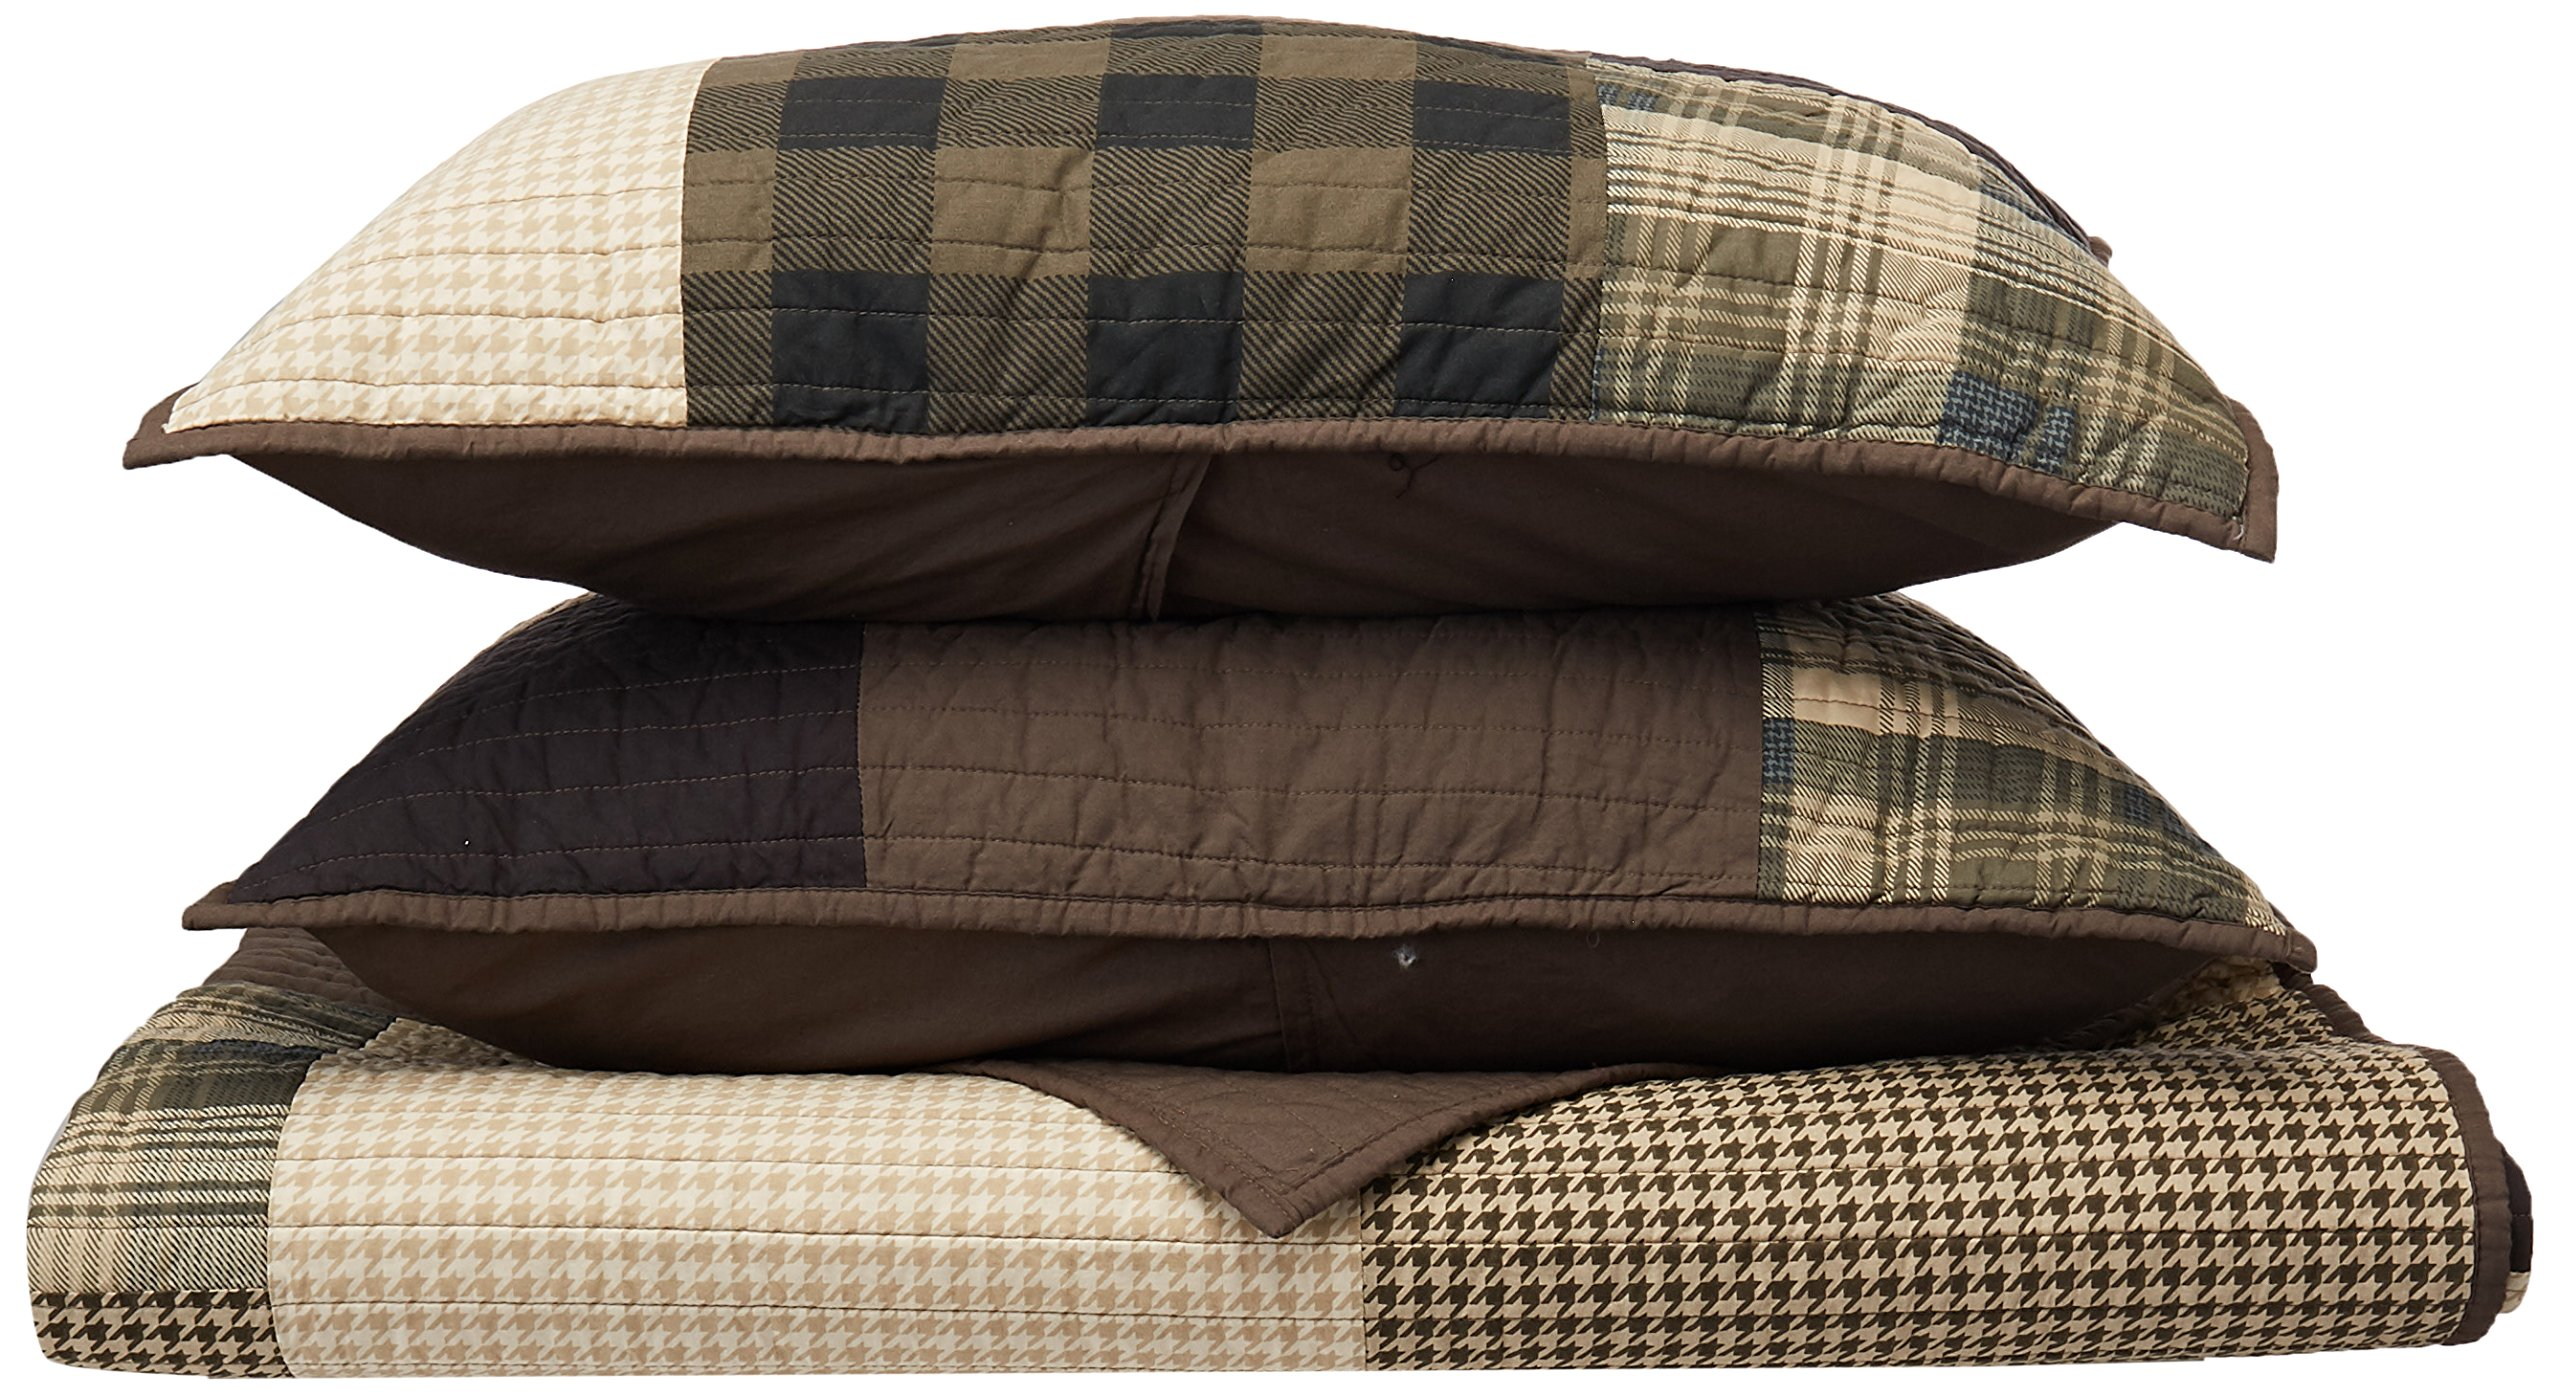 Woolrich Winter Hills Full/Queen Size Quilt Bedding Set - Grey Tan, Plaid – 3 Piece Bedding Quilt Coverlets – Cotton Bed Quilts Quilted Coverlet